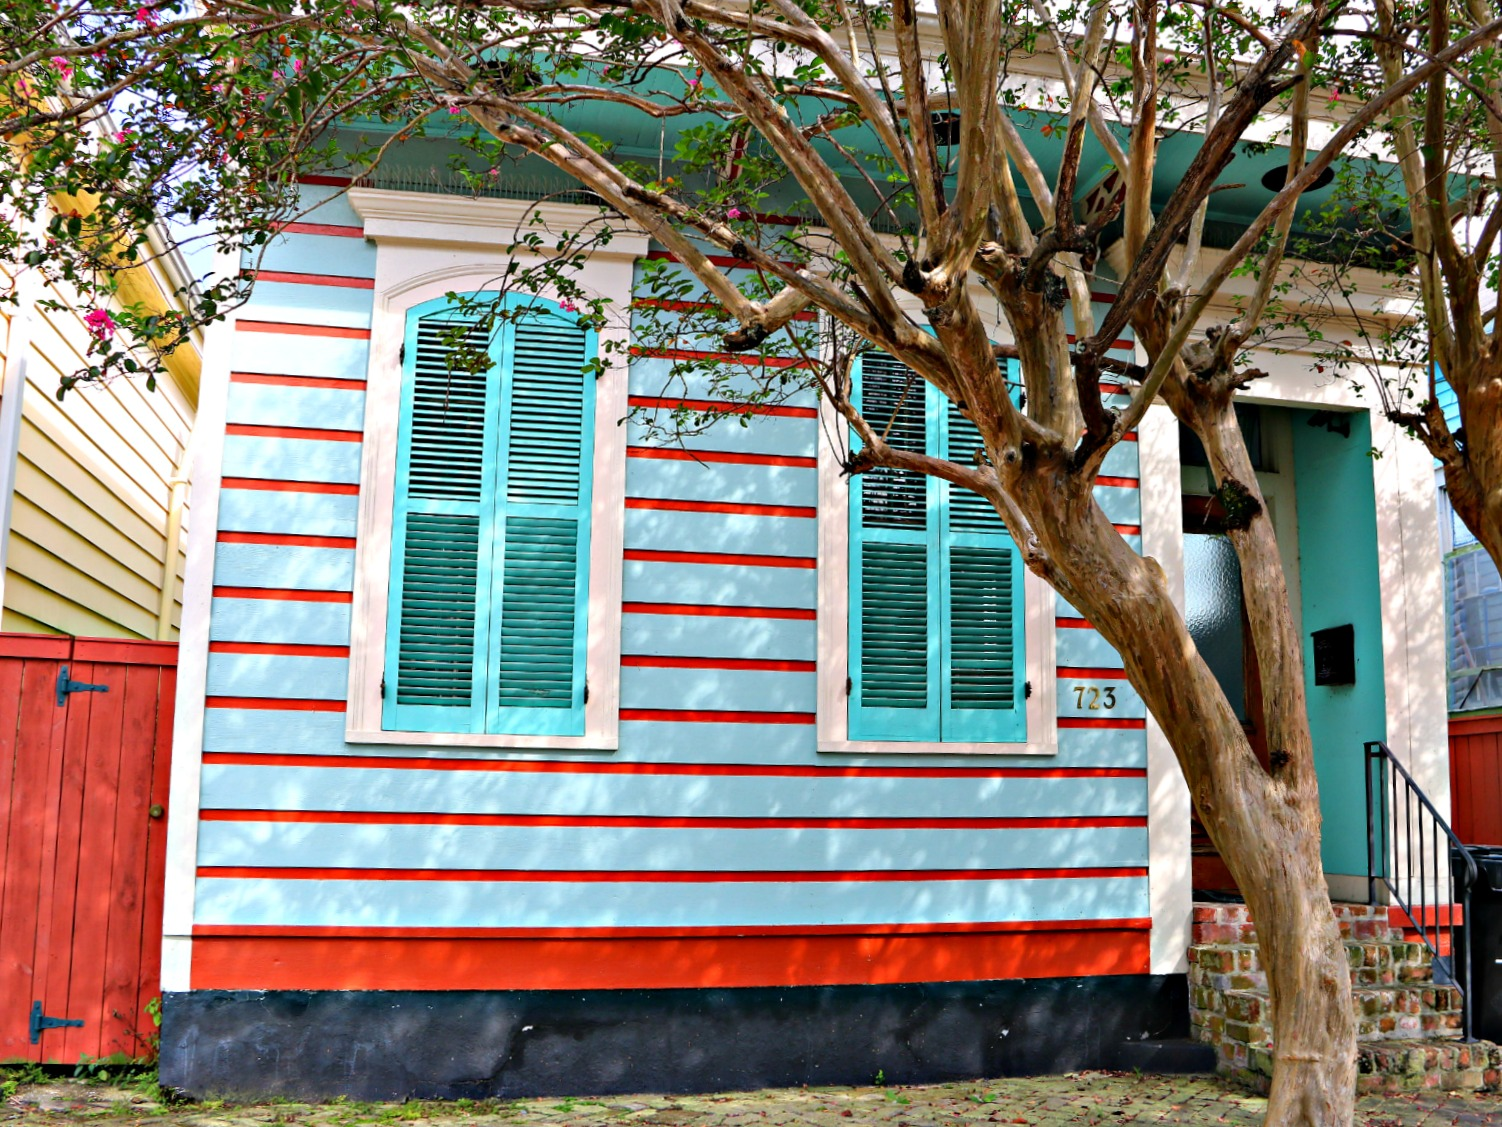 Bywater Real Estate. So many colorful homes in the Bywater of New Orleans